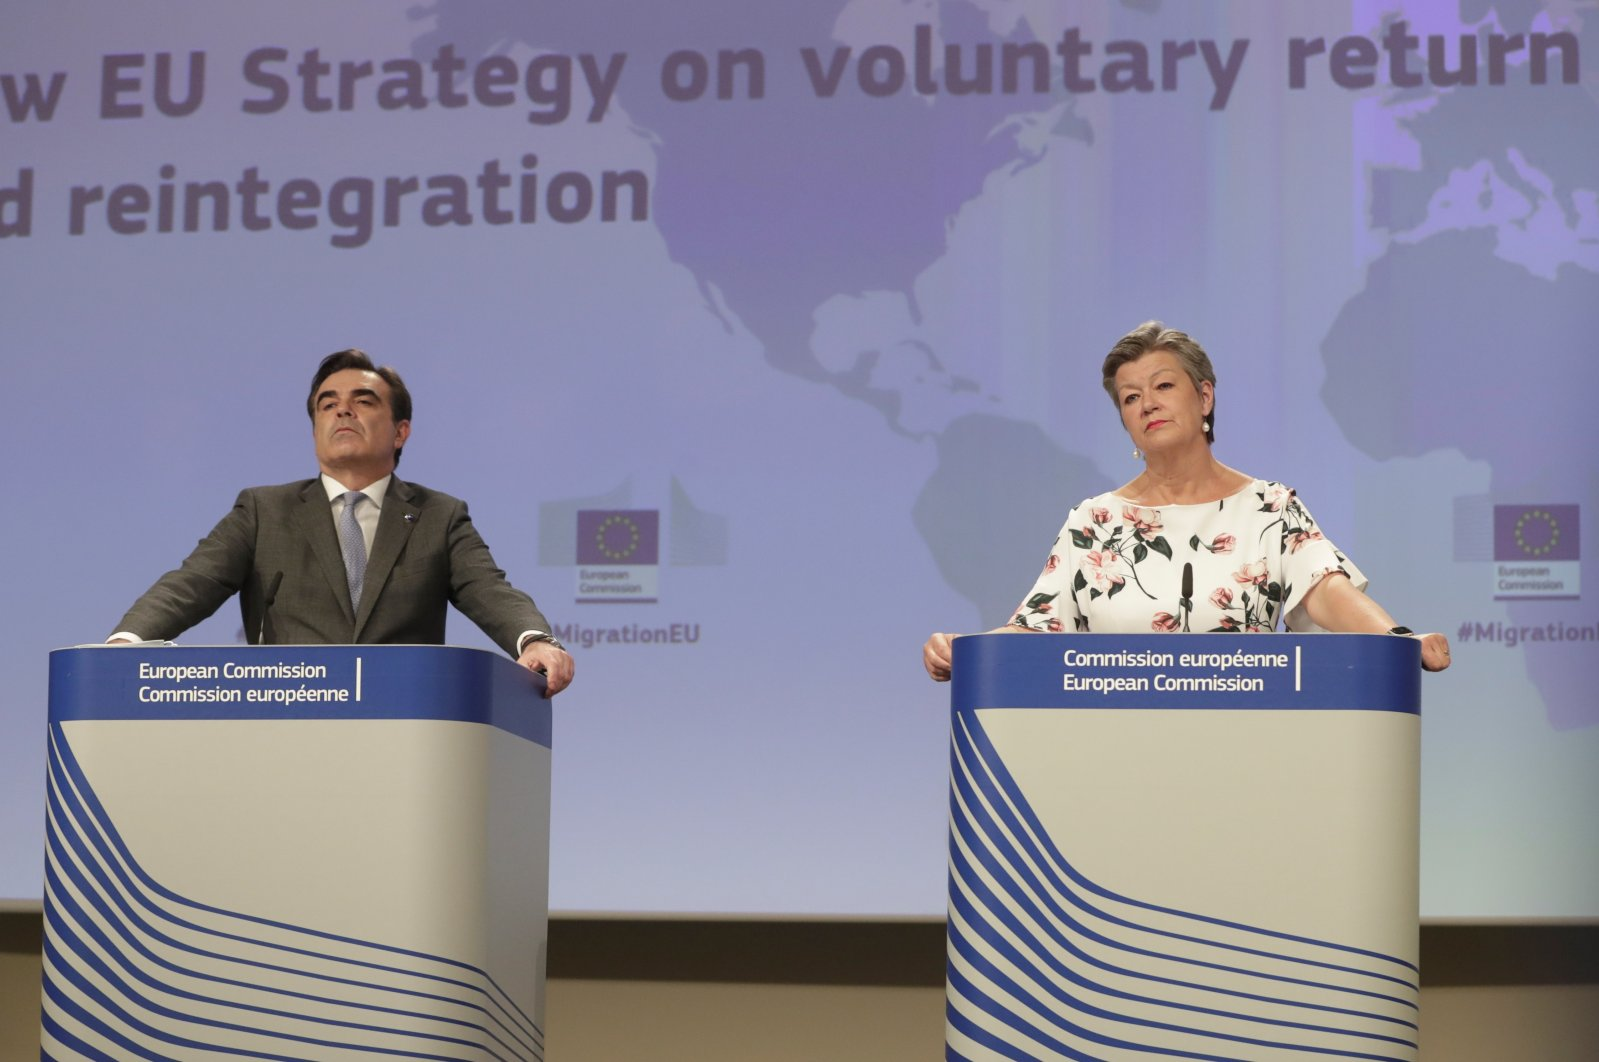 European Commission Vice-President for Promoting the European Way of Life, Margaritis Schinas (L), and European Commissioner for Home Affairs, Ylva Johansson attend a press conference in Brussels, Belgium, April 27, 2021. (Reuters Photo)